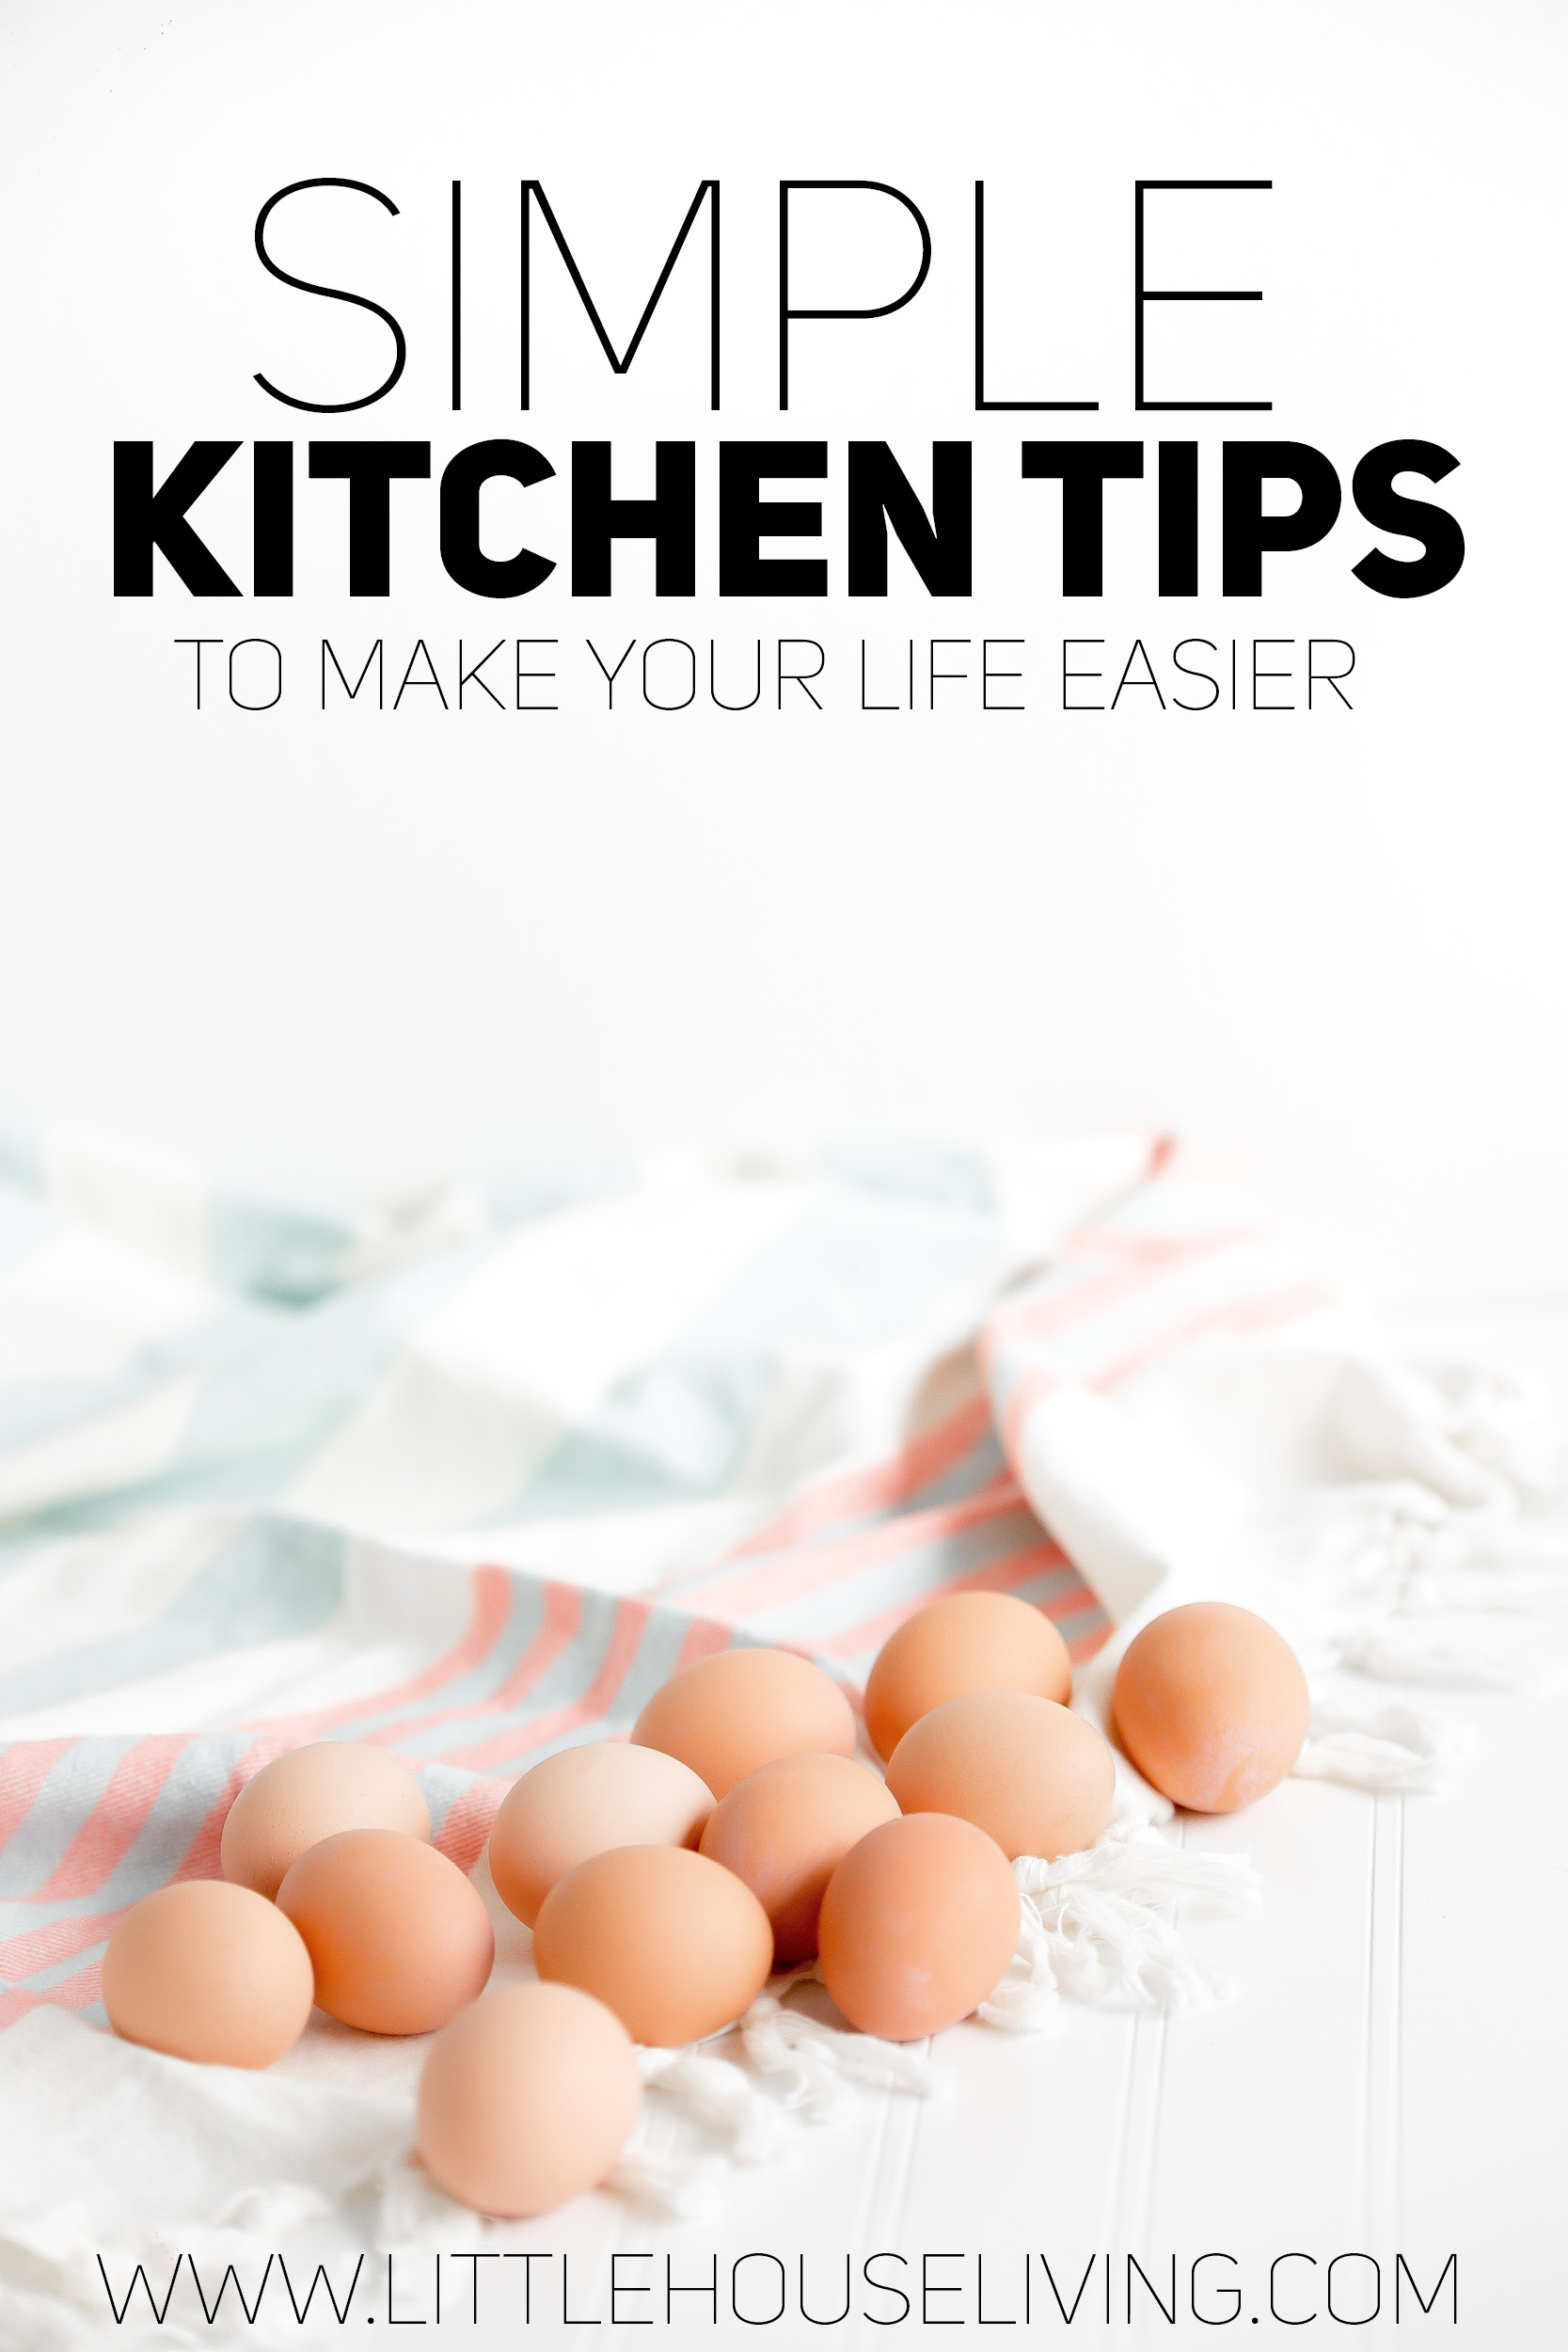 Simple Kitchen Tips to help make your life easier. Great tips on how to tell if eggs are good, tips on washing produce, and MUCH more!